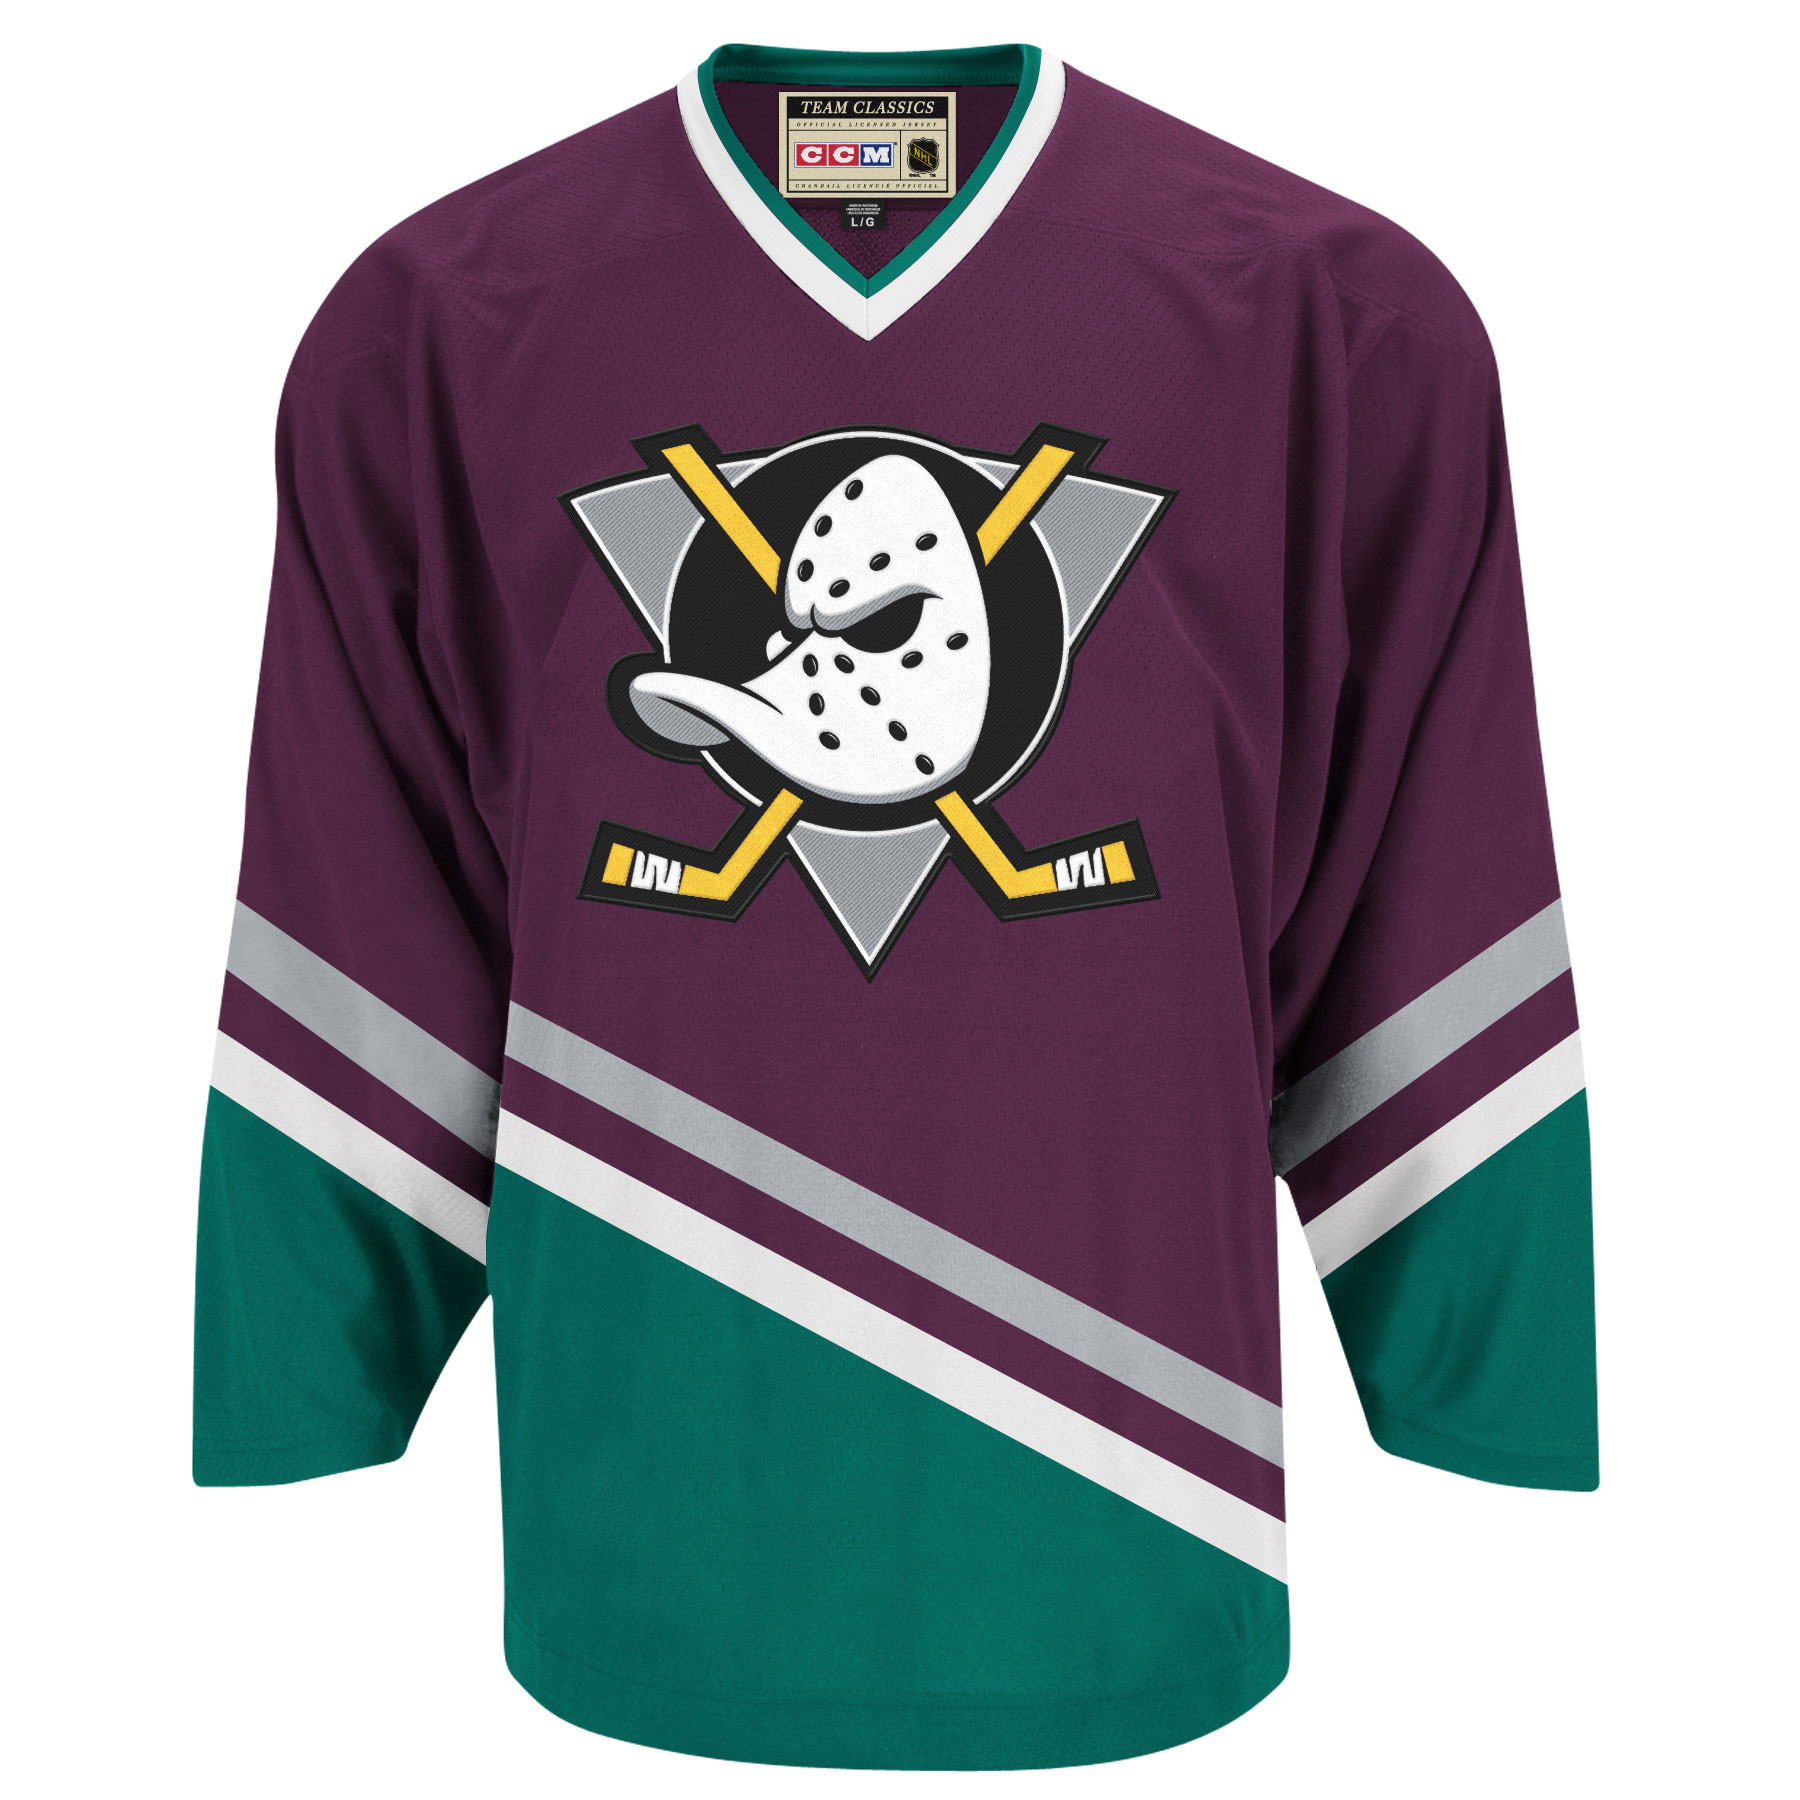 ... pattern that the original Mighty Ducks jersey had b476421dd57